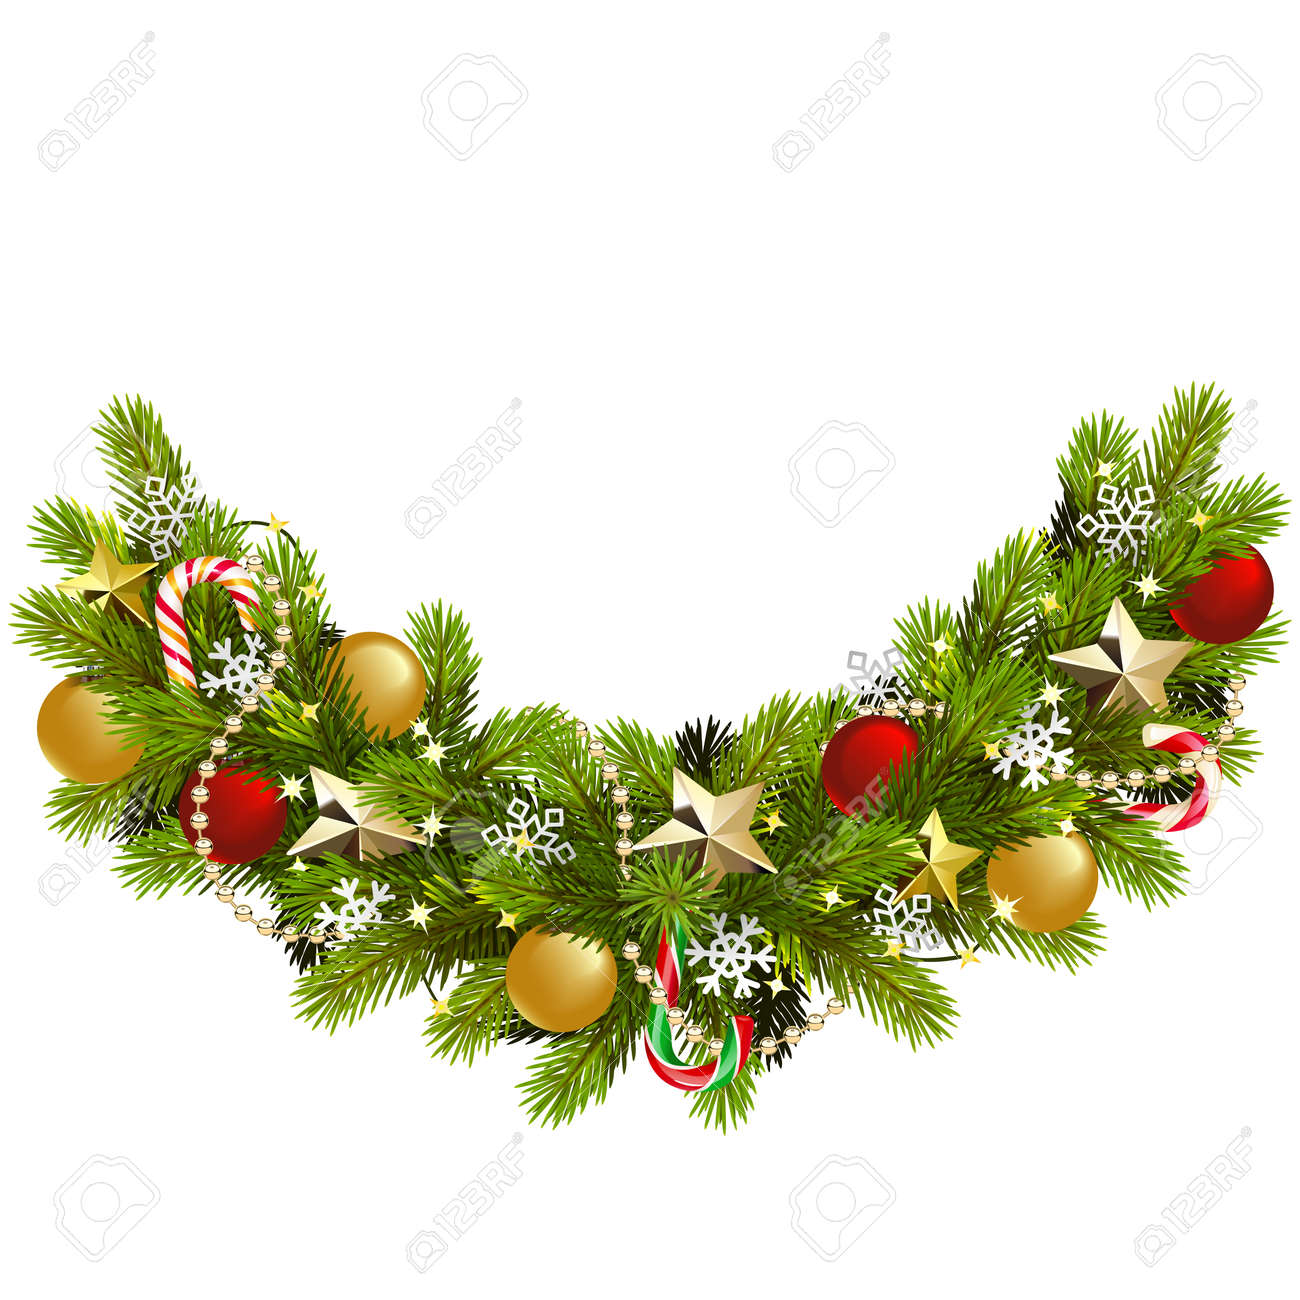 Vector Fir Christmas Decoration isolated on white background - 157102217